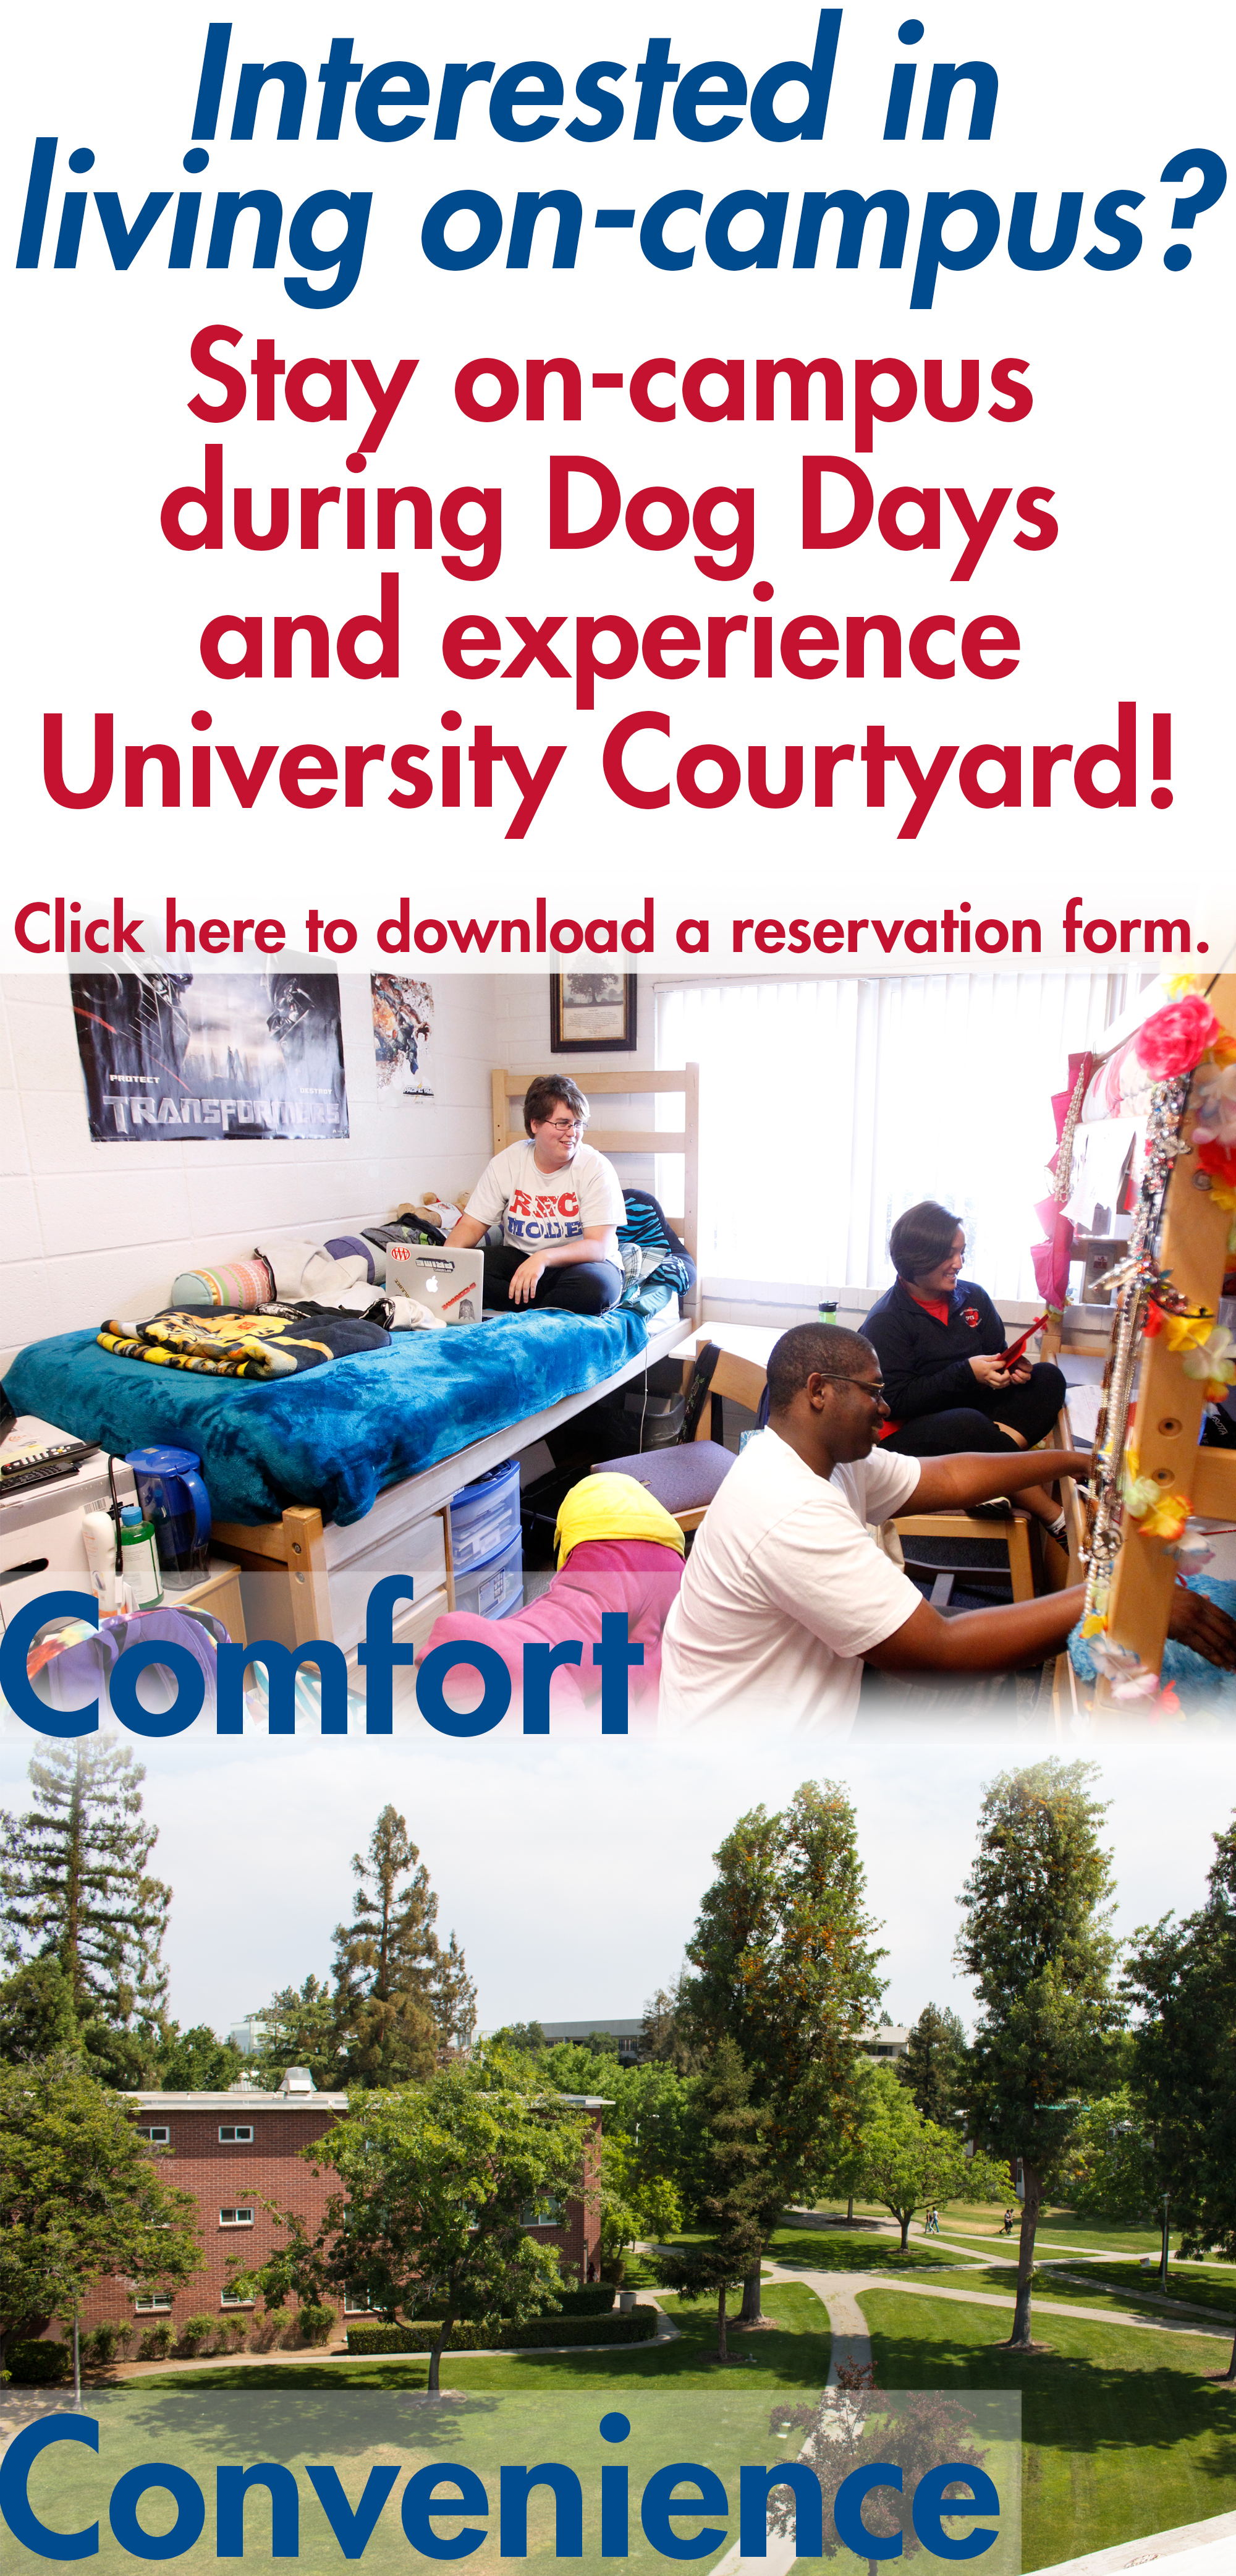 University Courtyard Ad